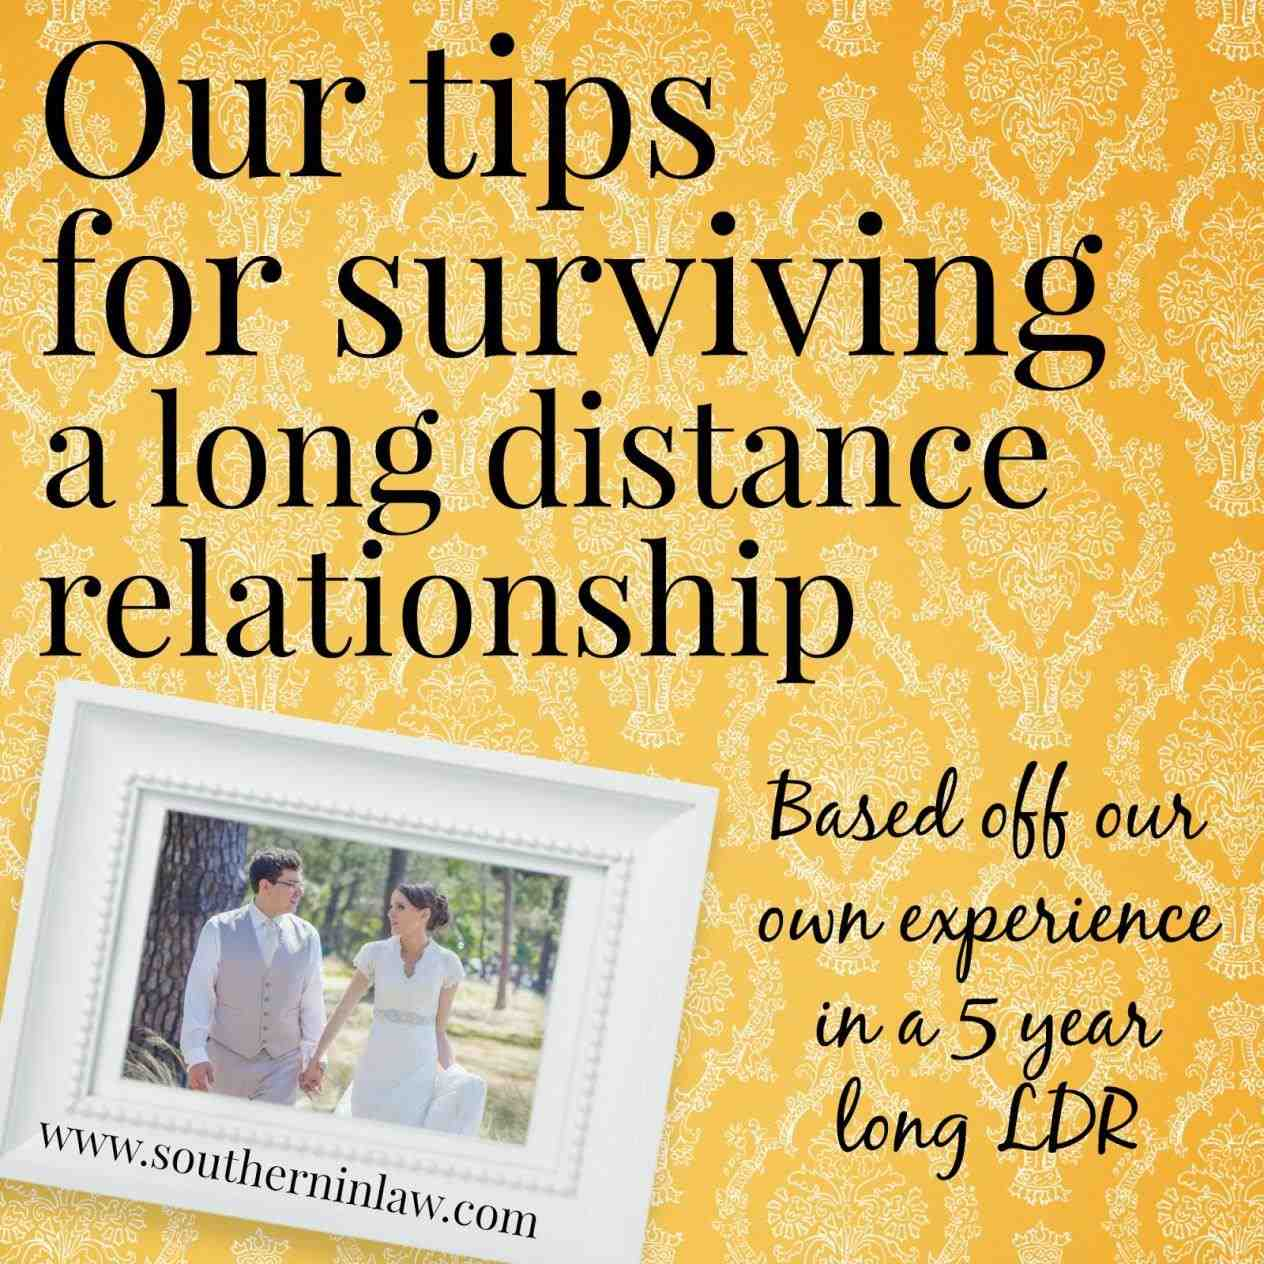 birthday message for a long distance boyfriend ; how-Birthday-Message-For-Girlfriend-Long-Distance-we-survived-years-in-a-long-distance-relationship-ldr-rhpinterestcom-happy